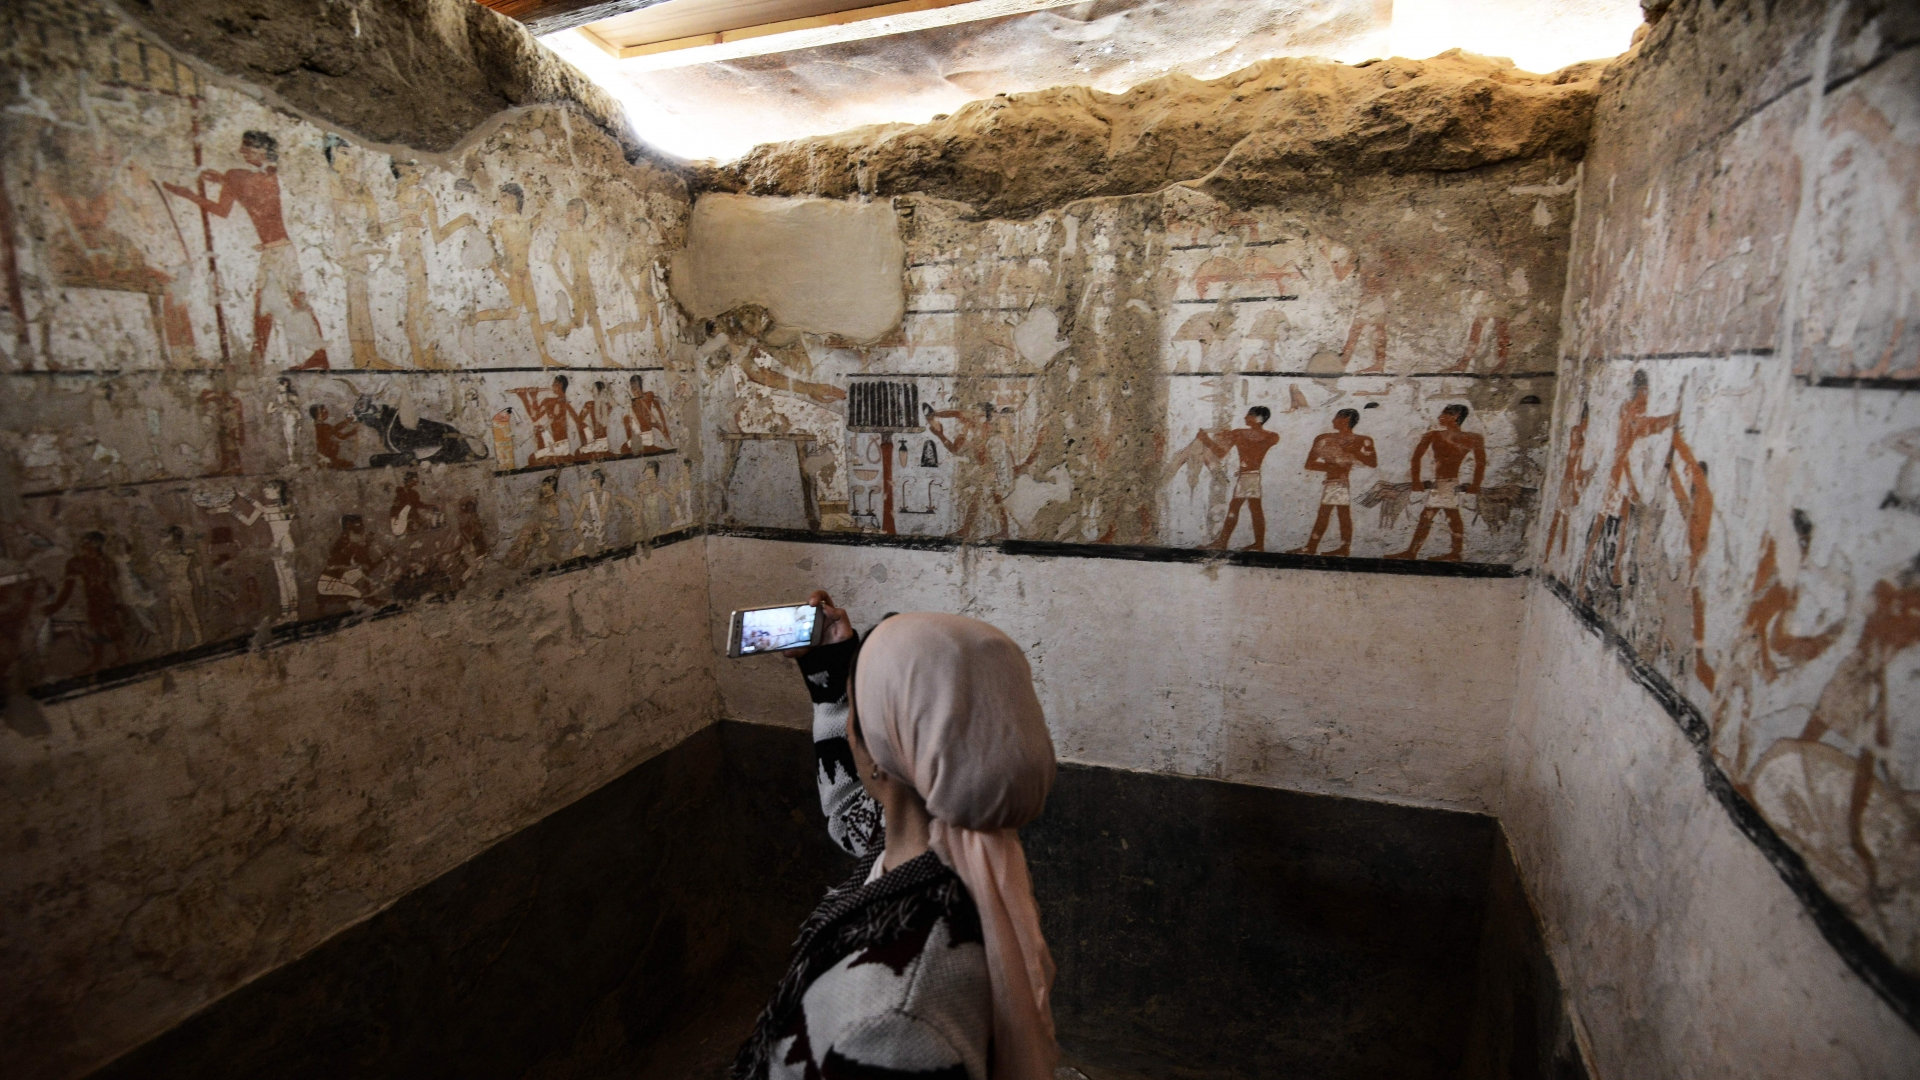 Inside the tomb of an Old Kingdom priestess. (Credit: Mohamed El-Shahed/AFP/Getty Images)